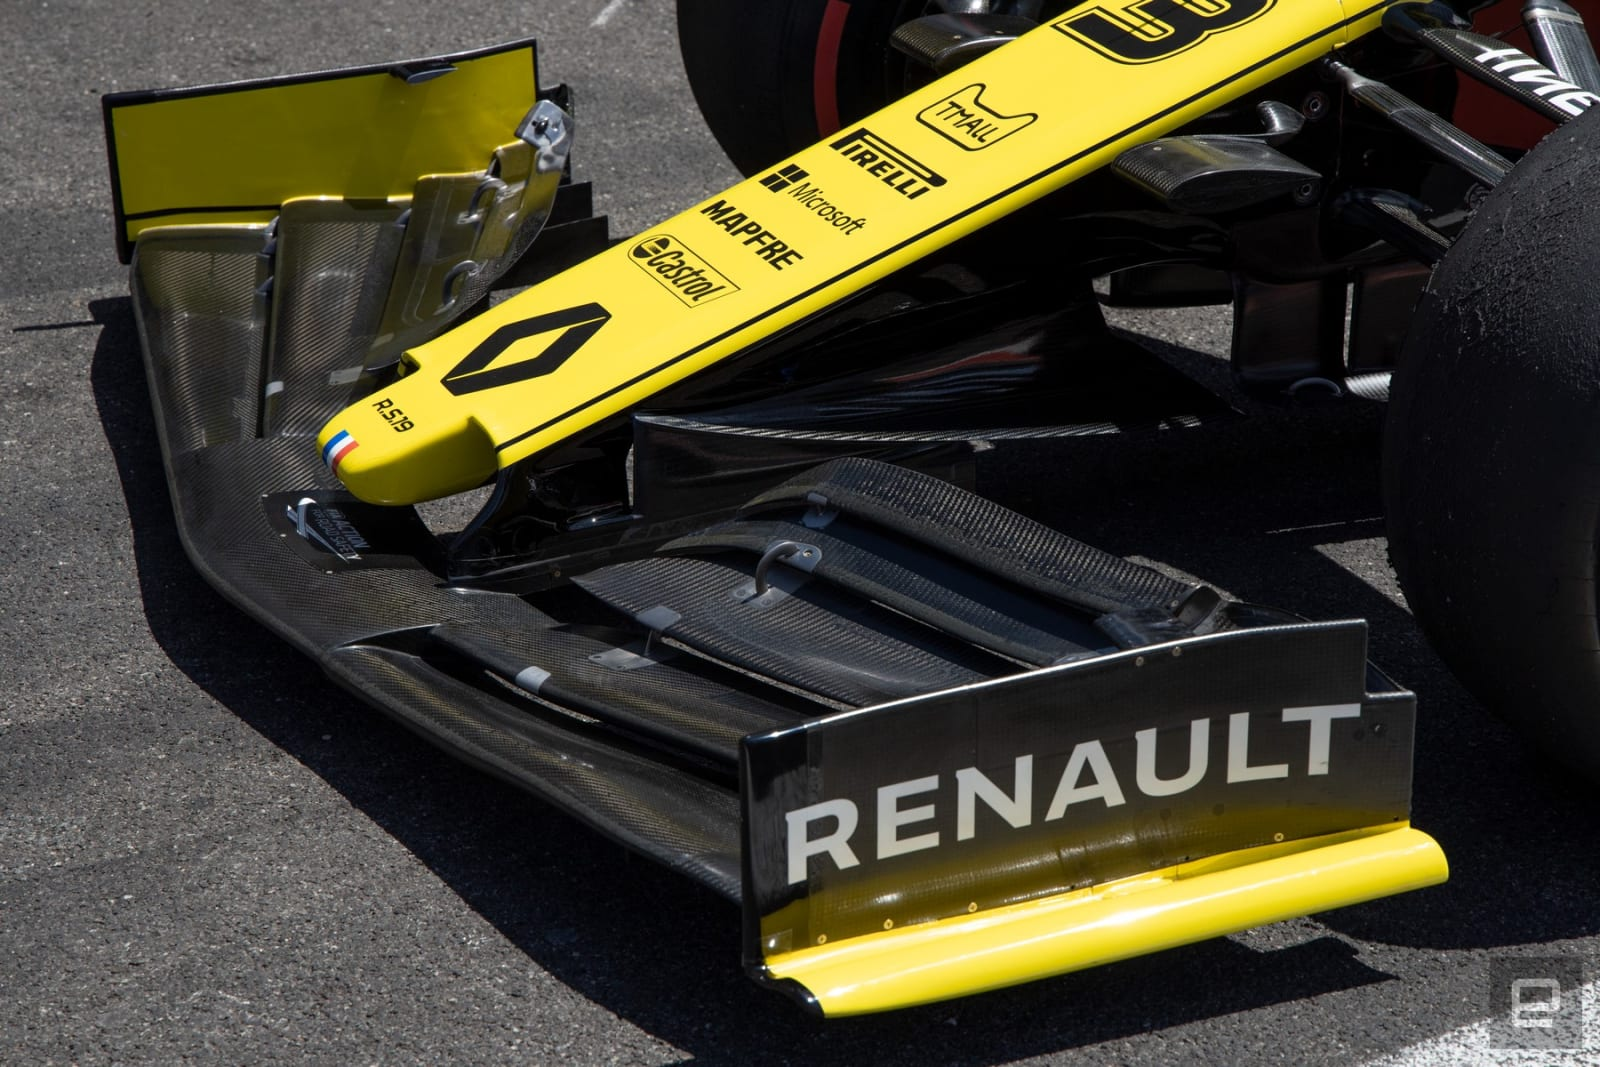 Renault Formula 1 insane tech